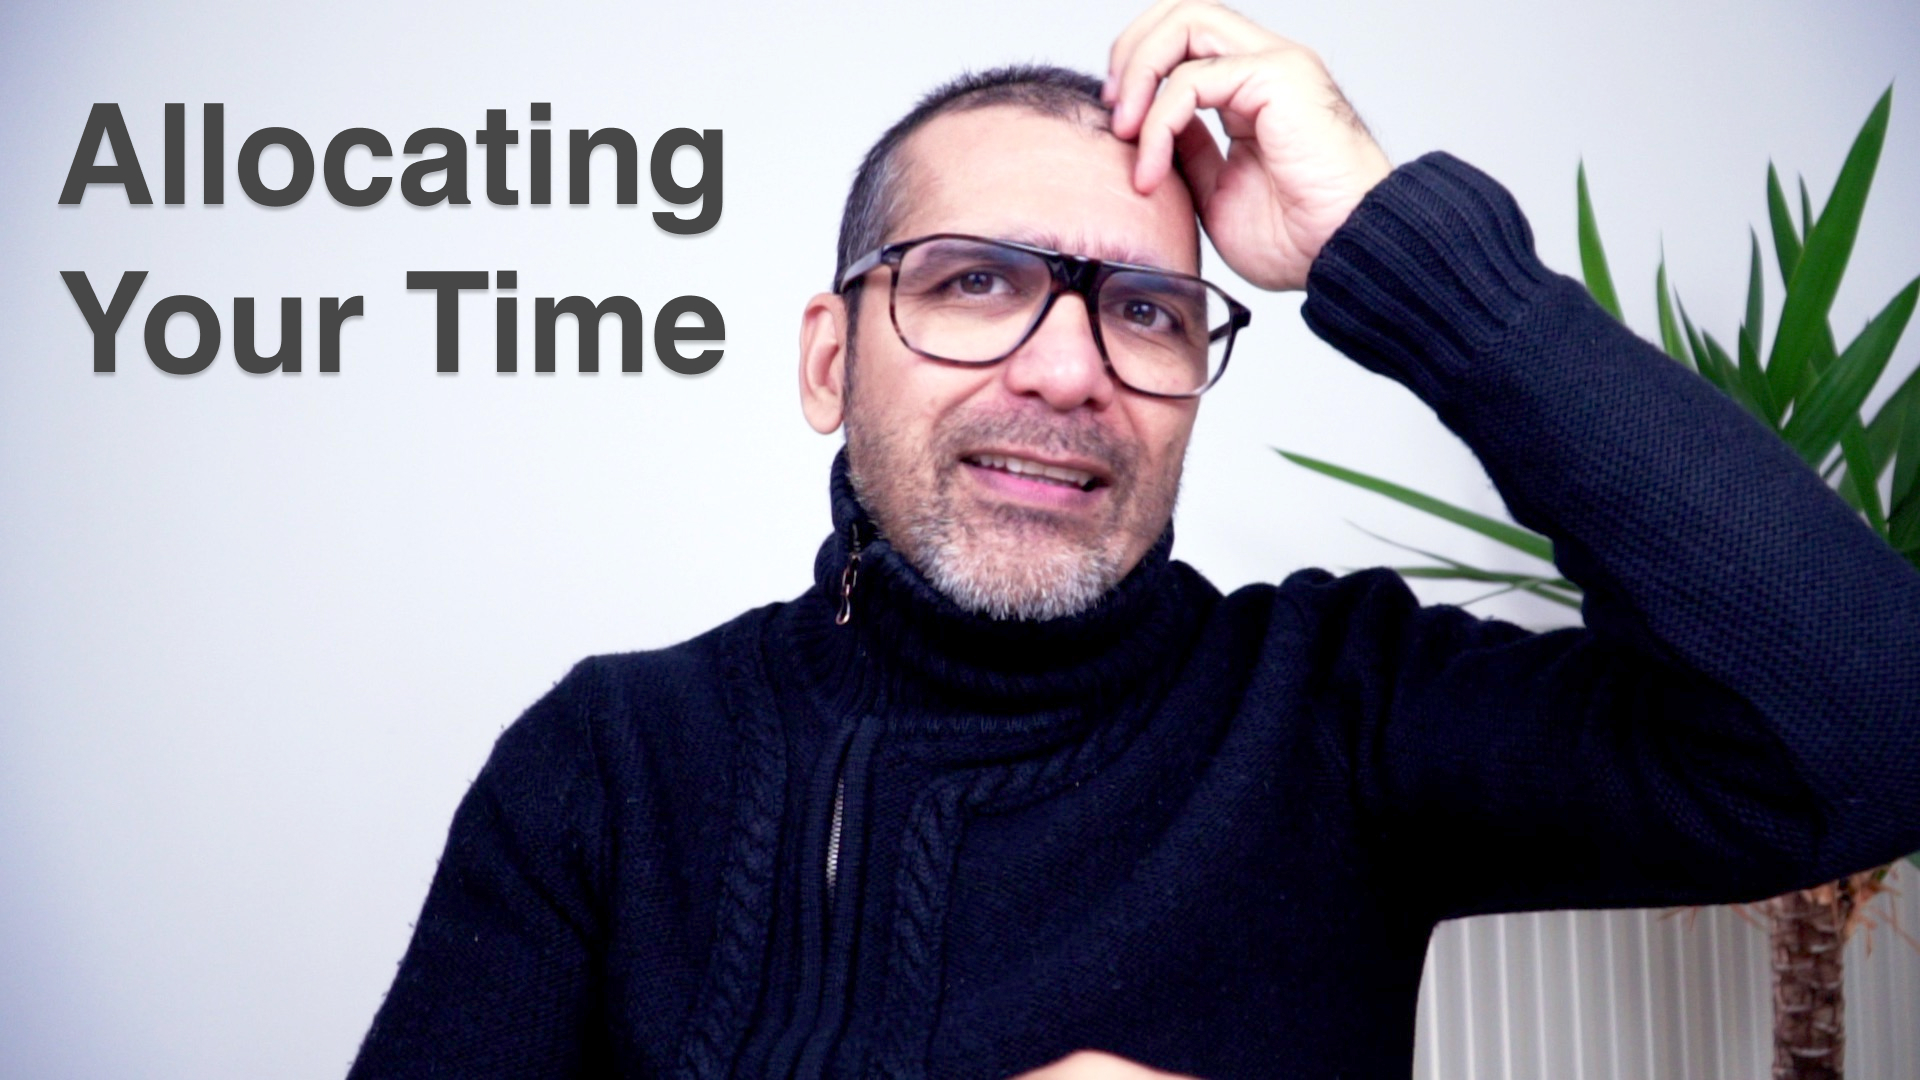 Create more time by allocating it better